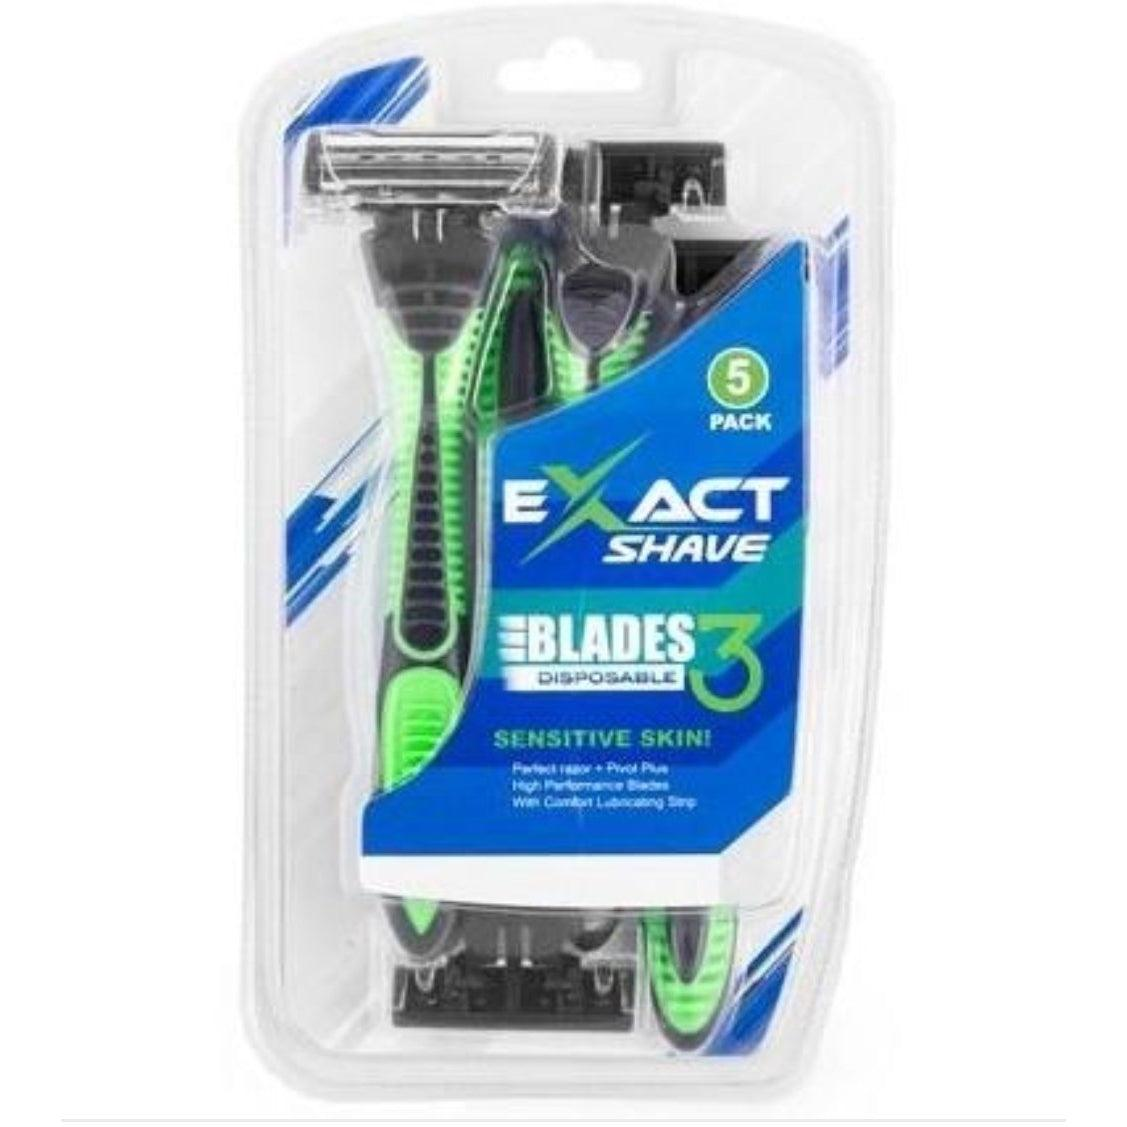 EXACT SHAVE Razors - The Necessities Company